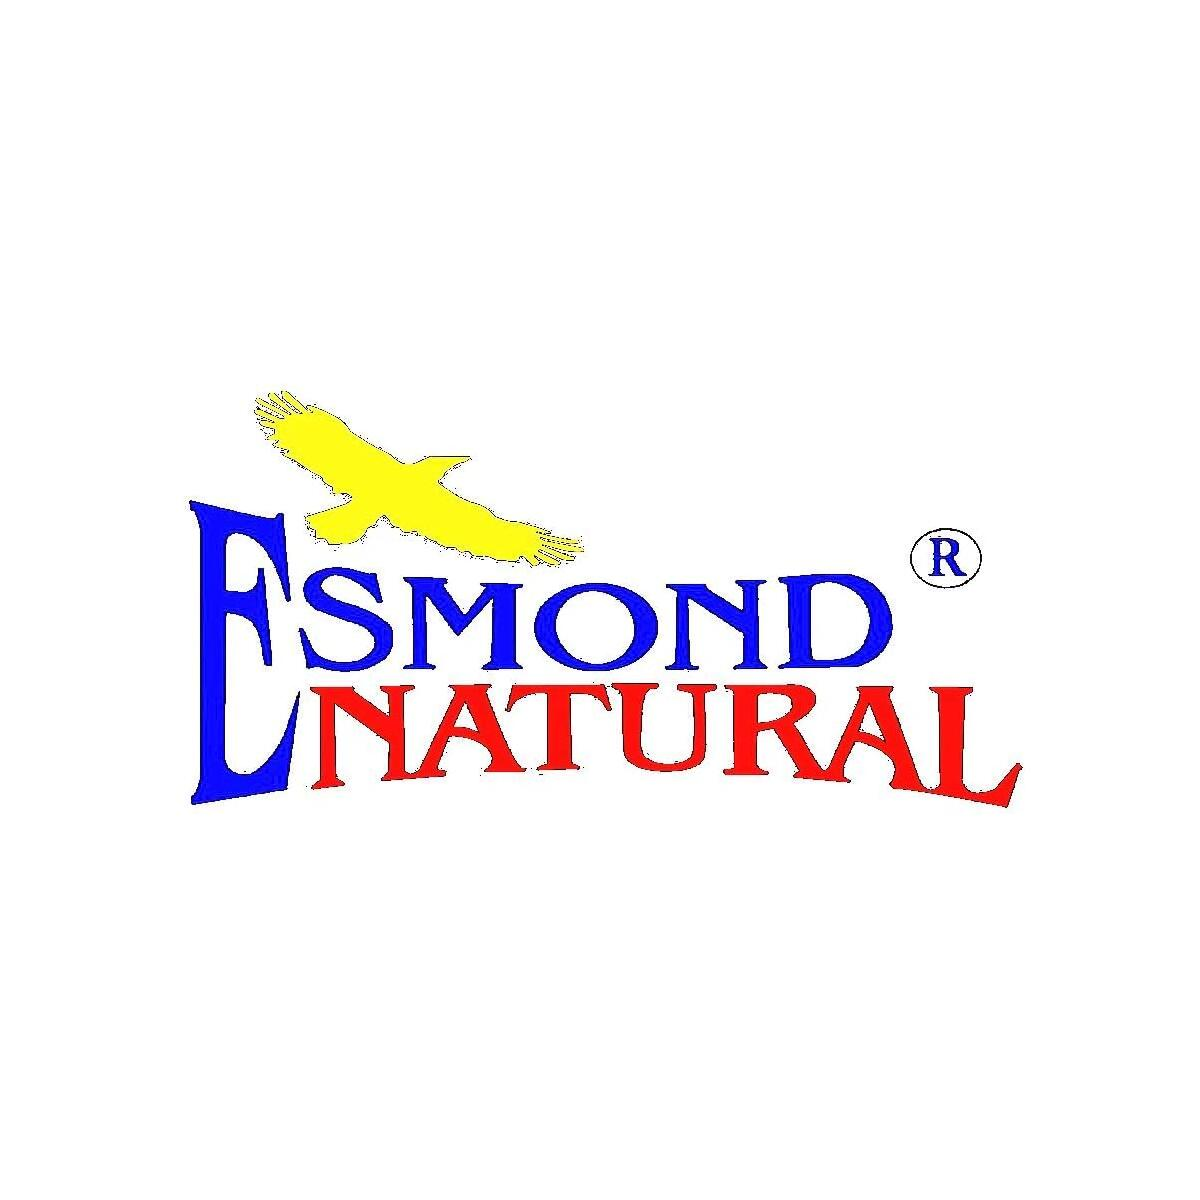 Esmond Natural: Cod Liver Oil (Omega-3, Maintain Health, Regulate Physical Function), GMP, Natural Product Assn Certified, Made in USA-1000mg, 60 Softgels